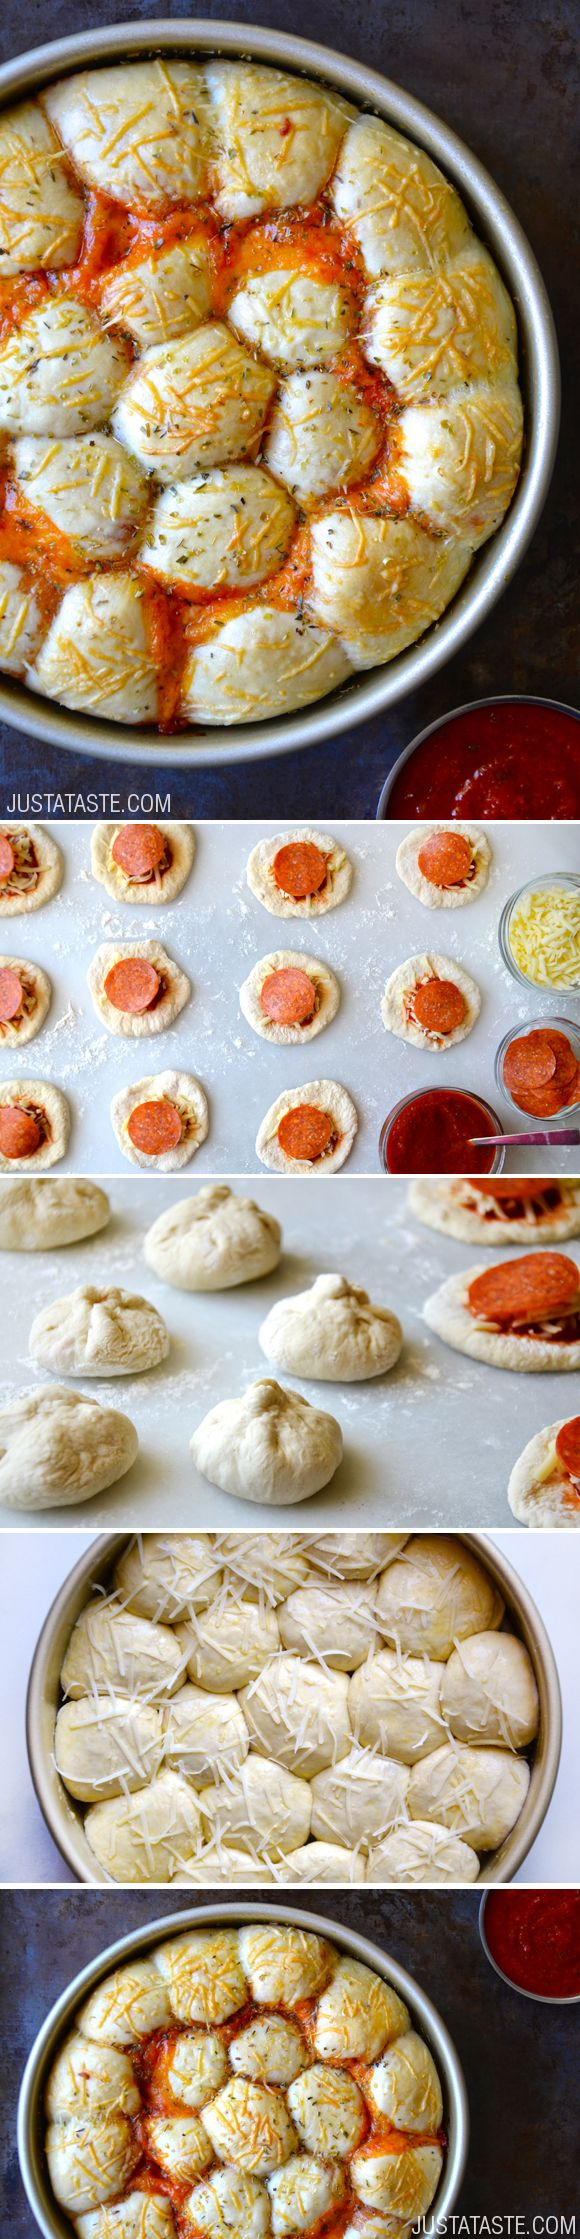 Cheese and Pepperoni Pizza Bites | #pizza #bites #appetizer #recipe